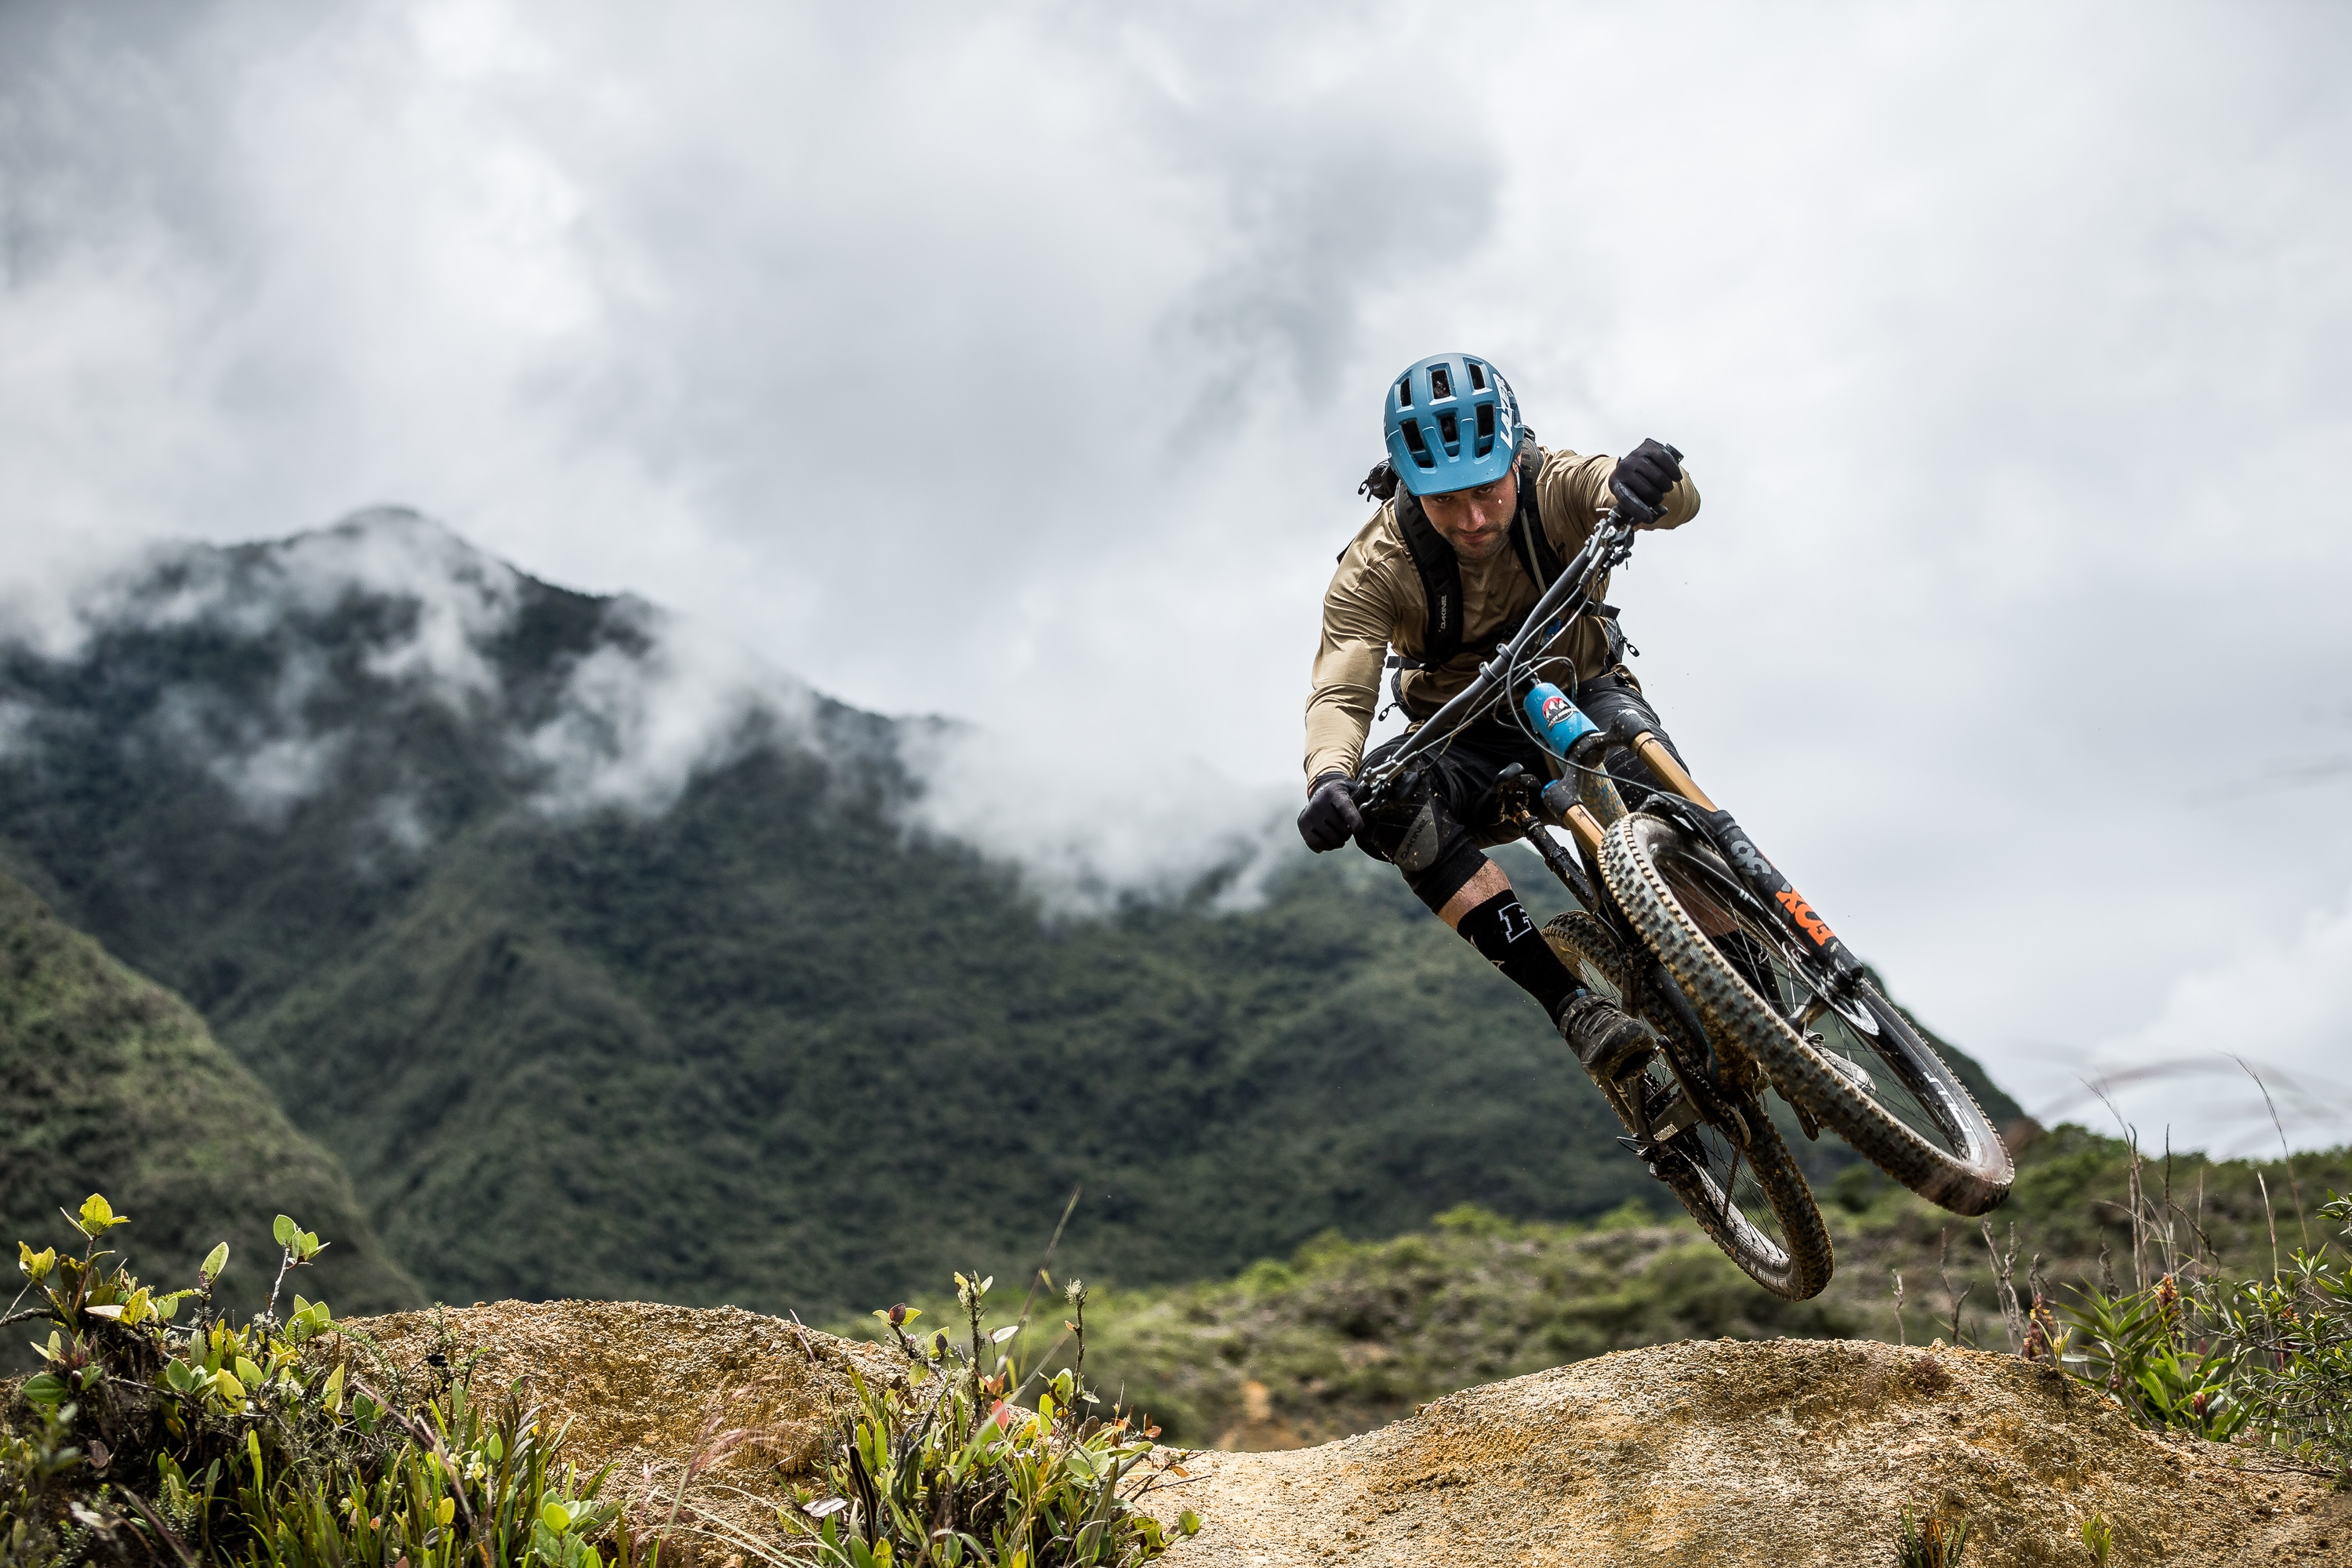 Scrubbing the natural jumps of Ibarra on our Ecuador MTB Film